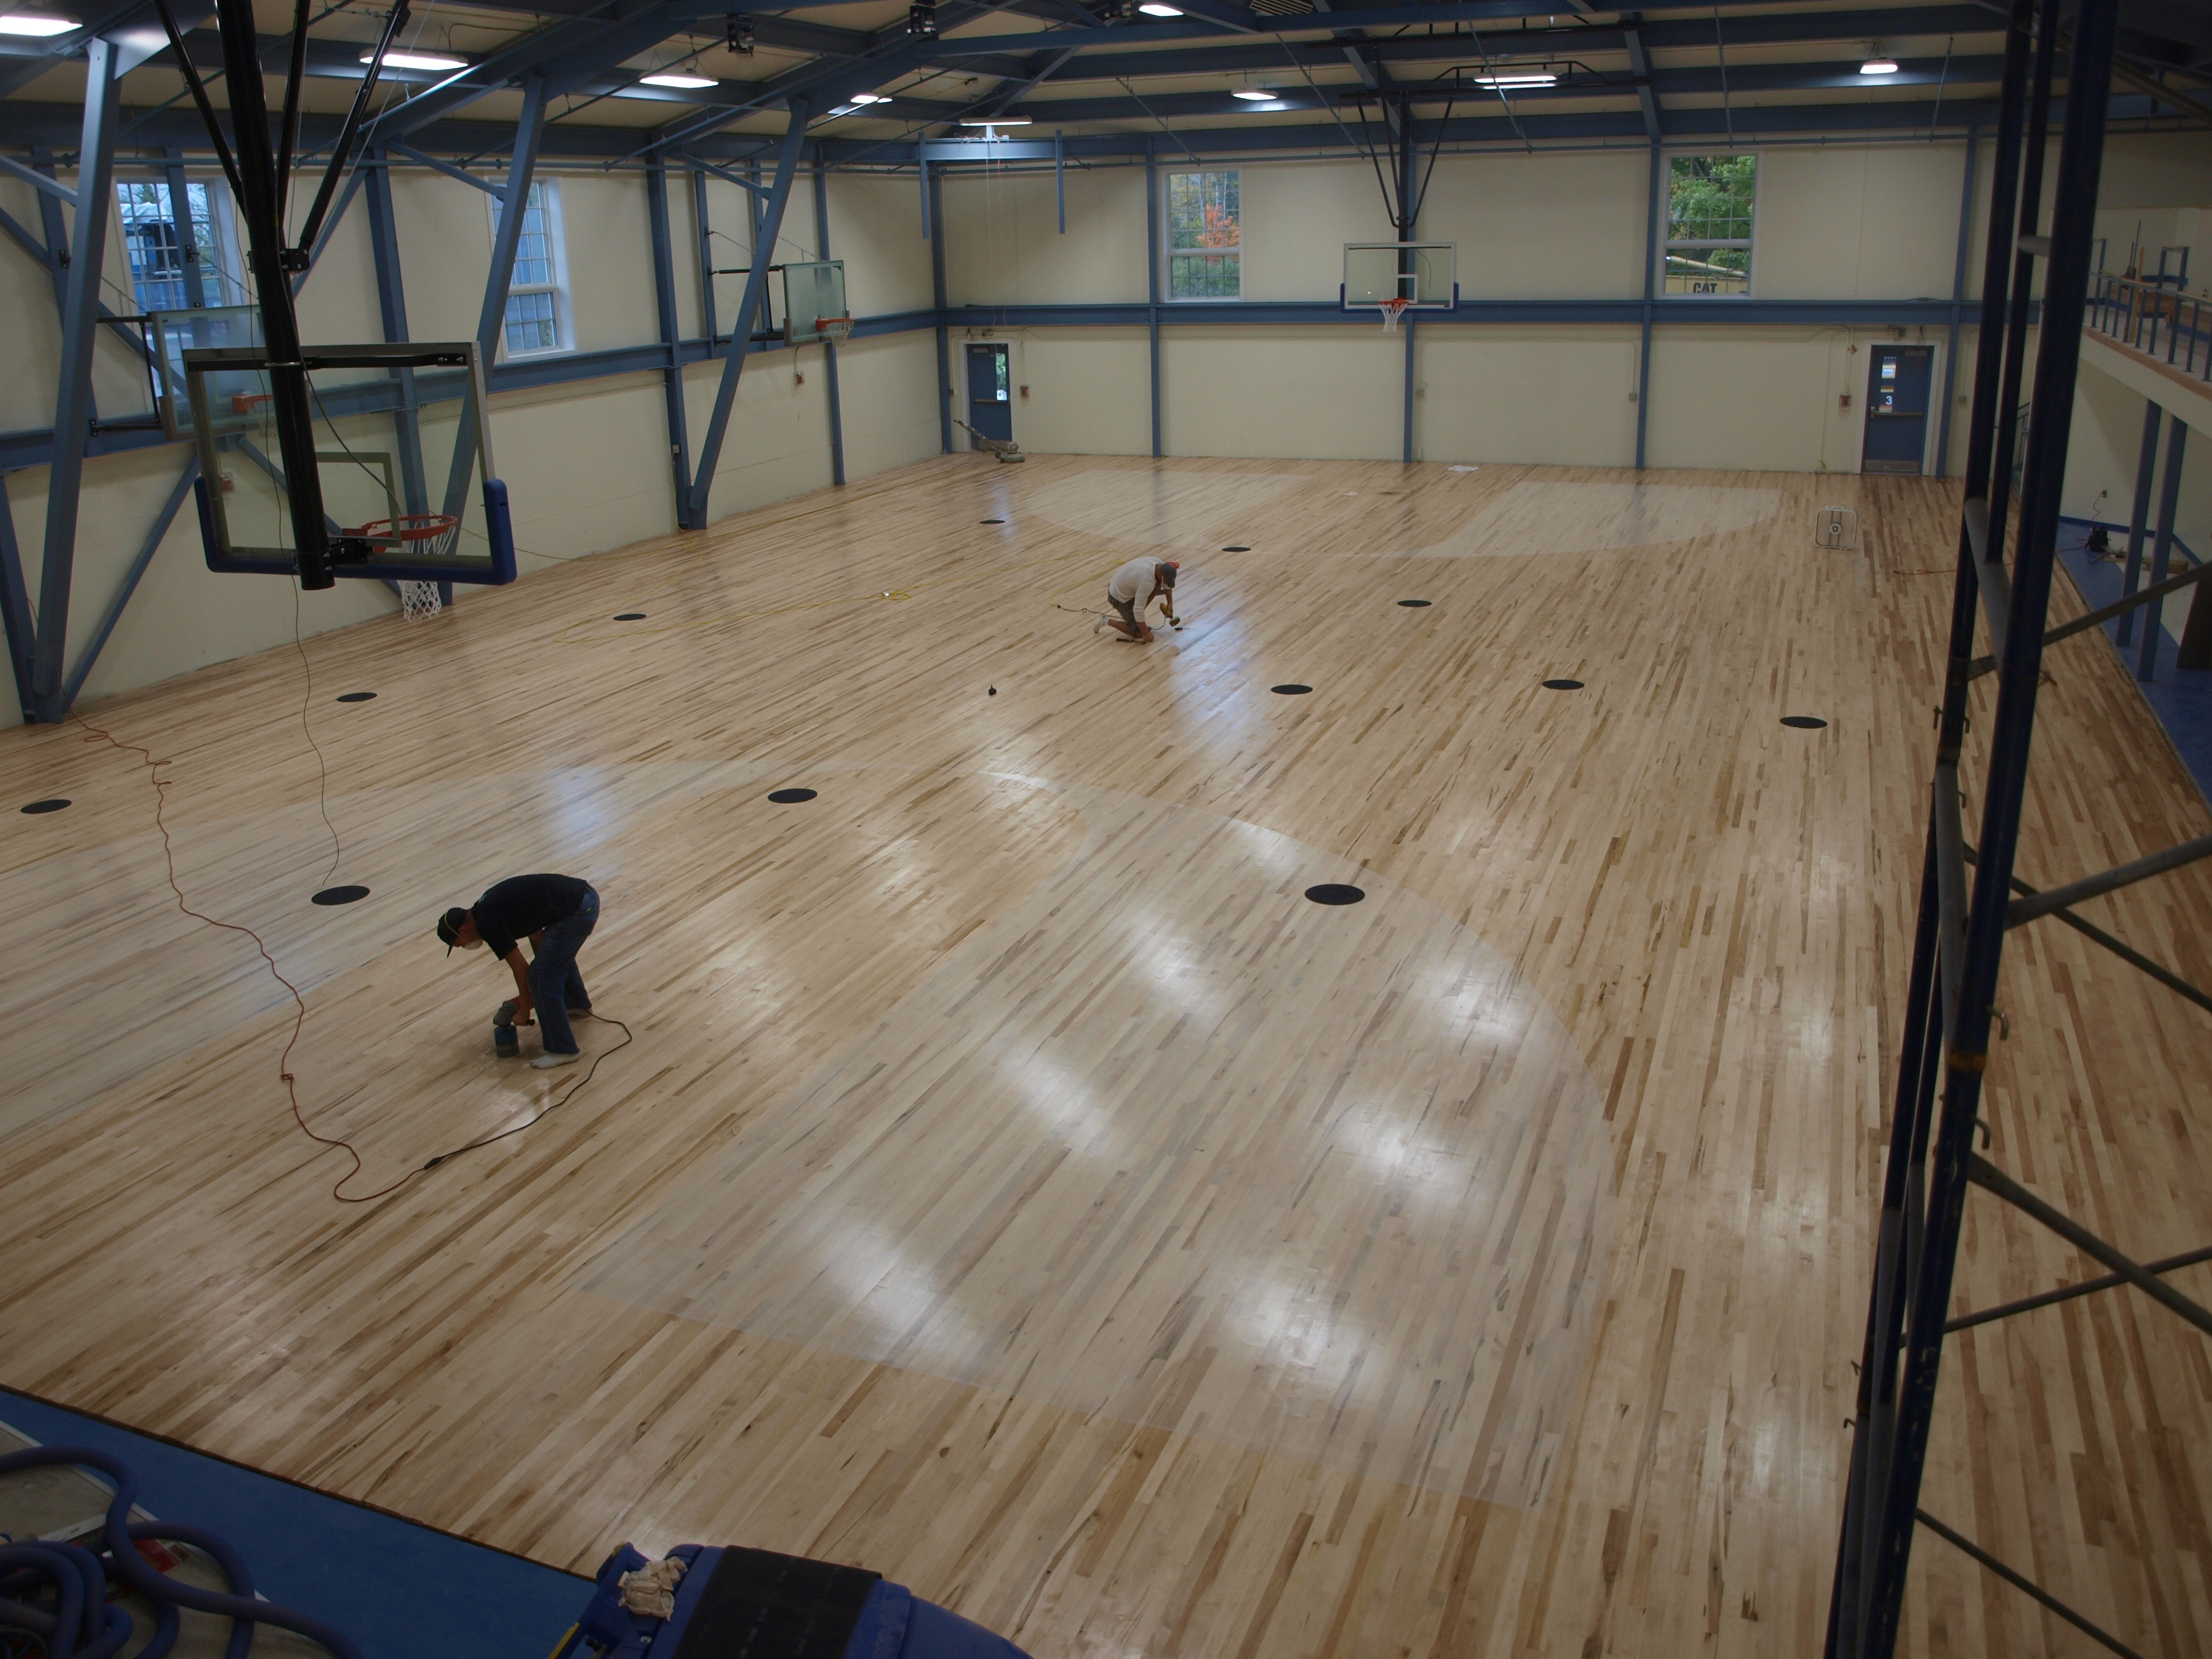 hardwood floor refinishing westerly ri of the craftsbury common lessons in building community new england with regard to craftsbury academys new gym floor was built entirely with locally donated lumber and installed with locally volunteered labor